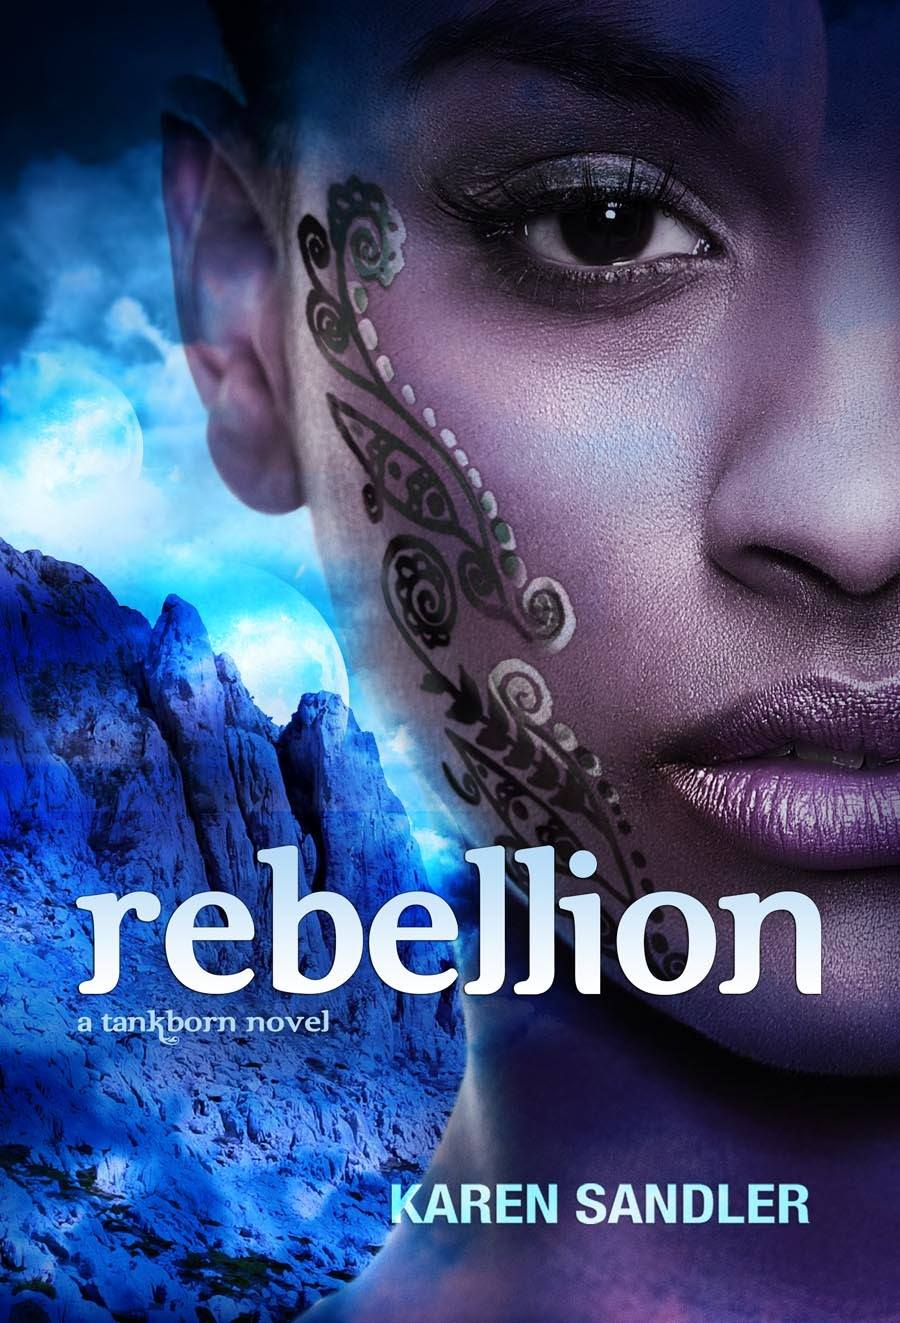 Rebellion (Tankborn #3) by Karen Sandler